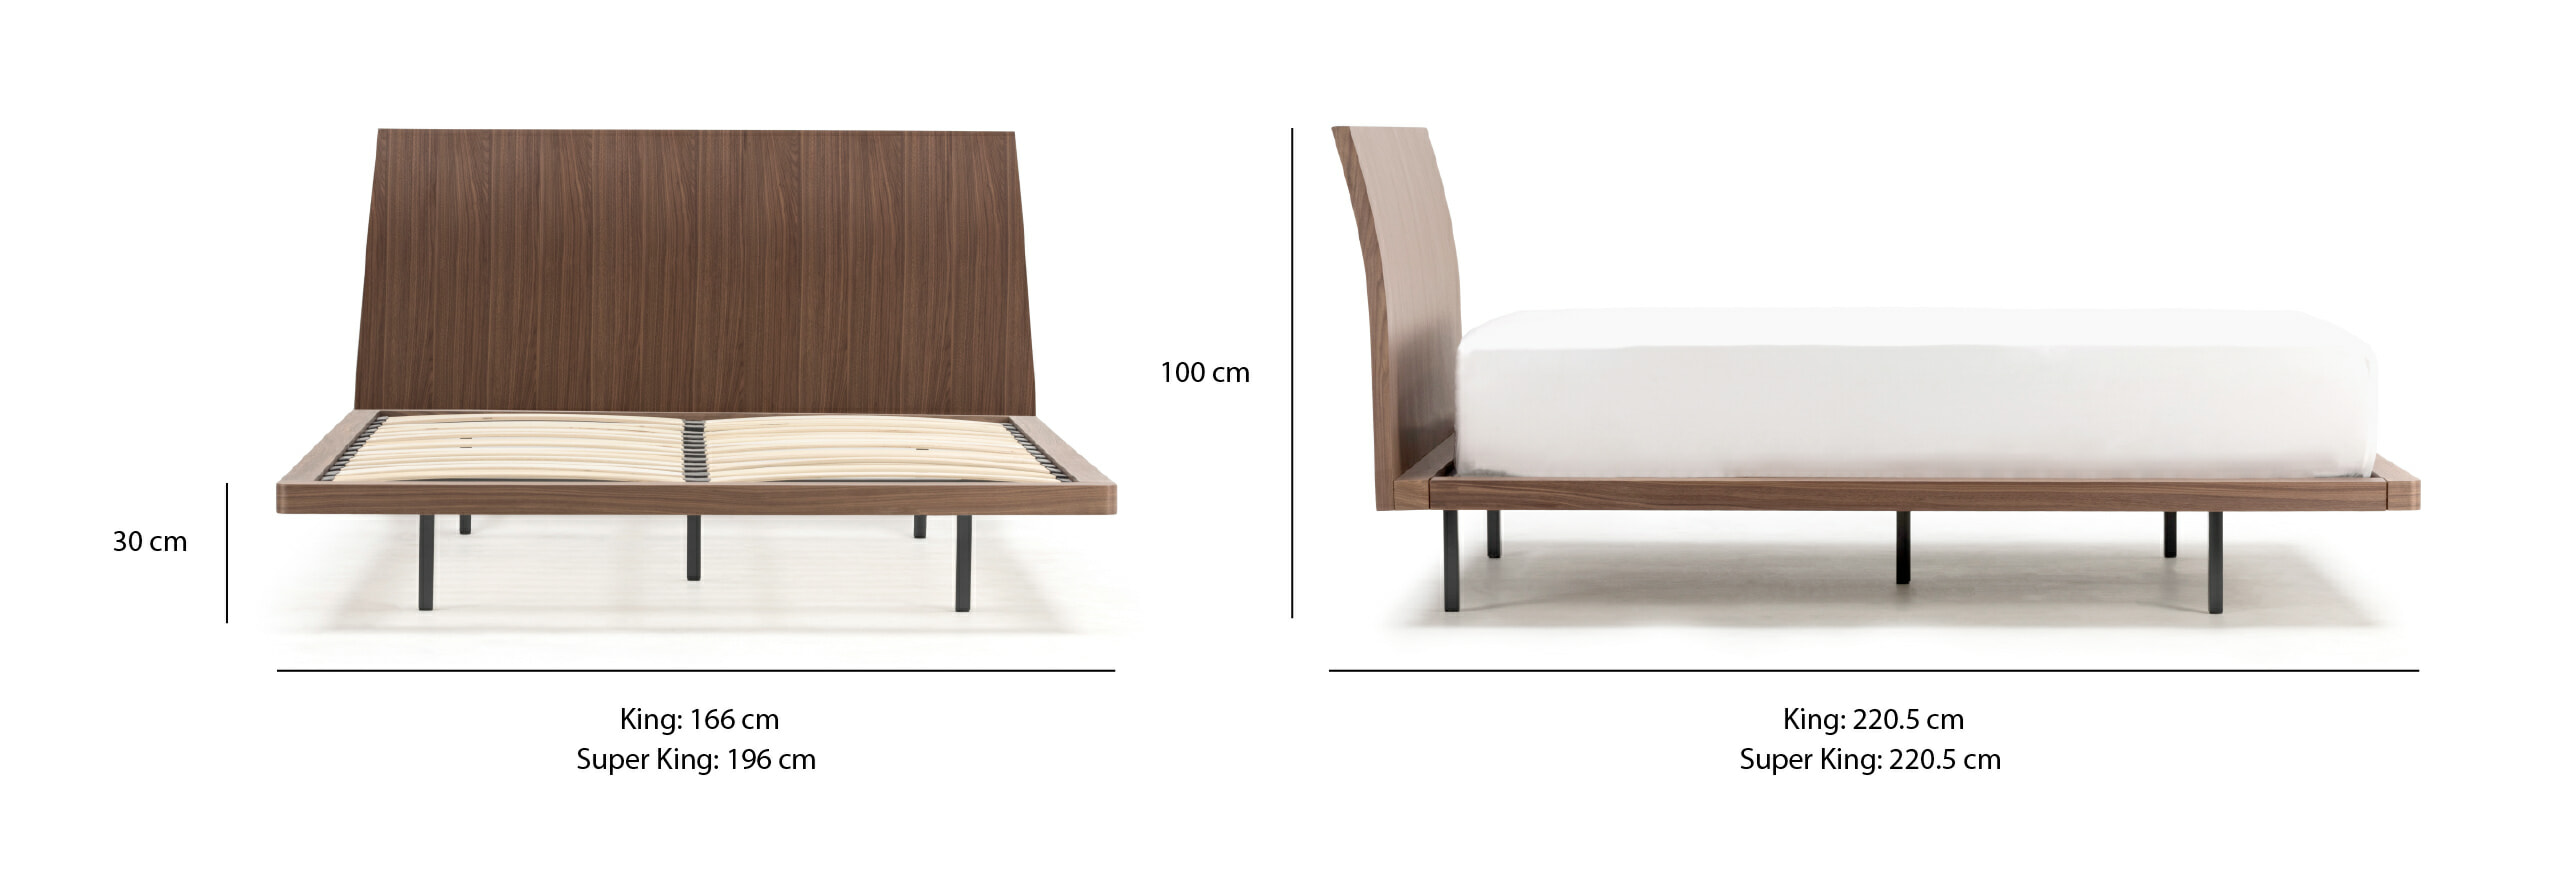 Noa sunset bed dimensions (UK)